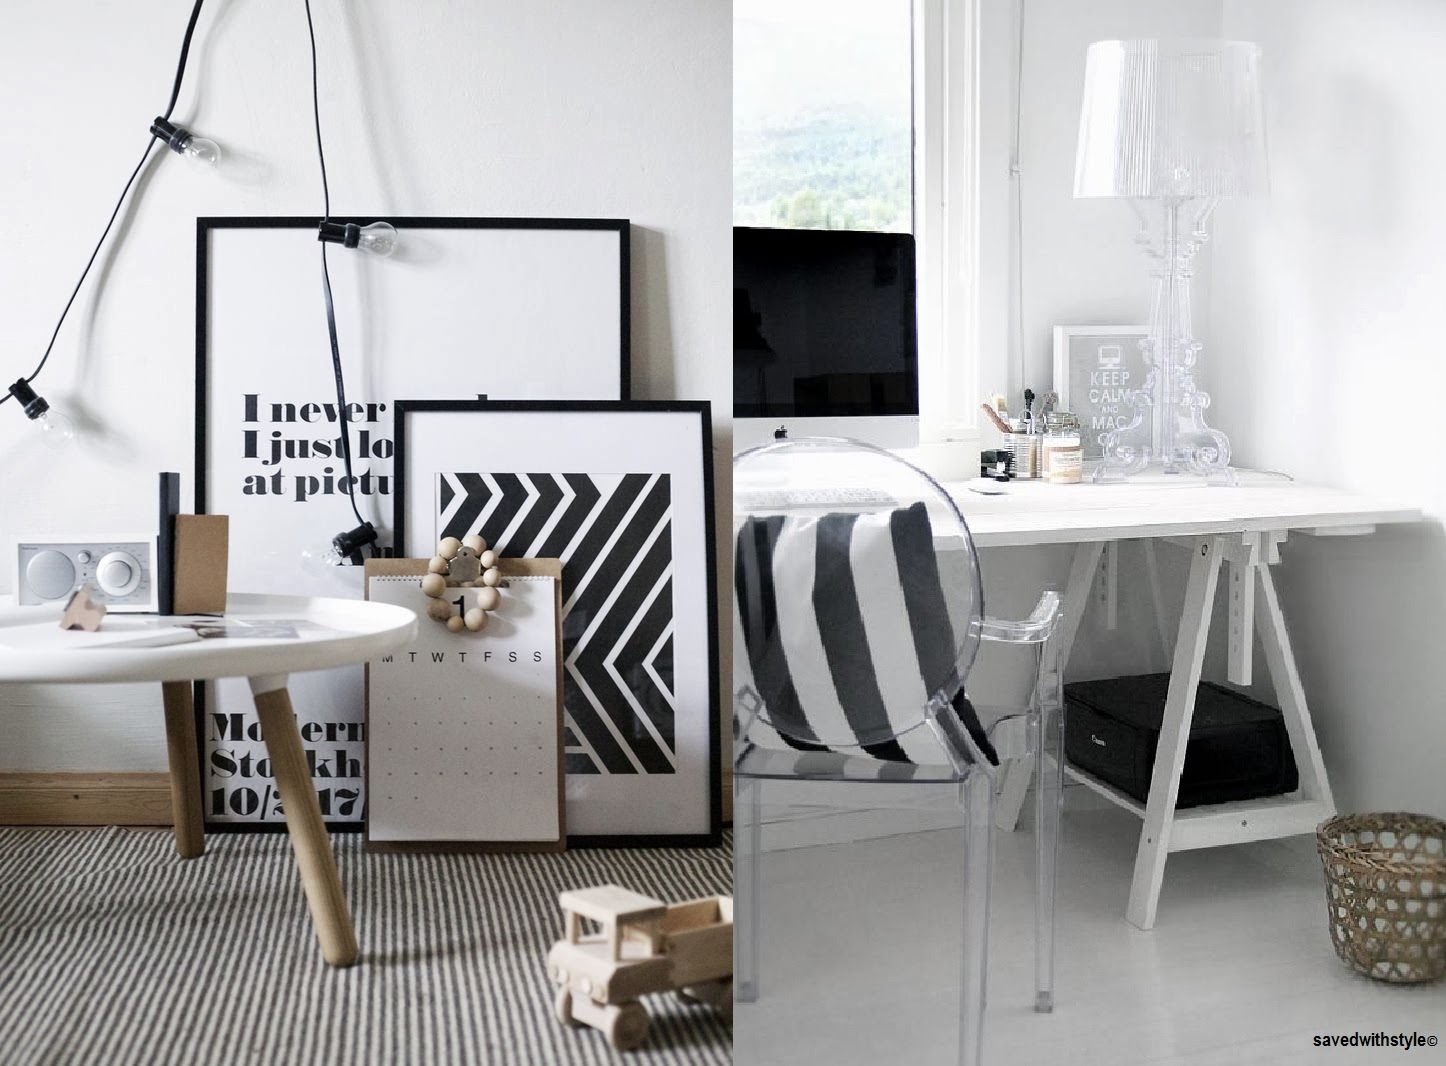 Saved with style: interieur inspiratie #1: scandinavische woonstijl